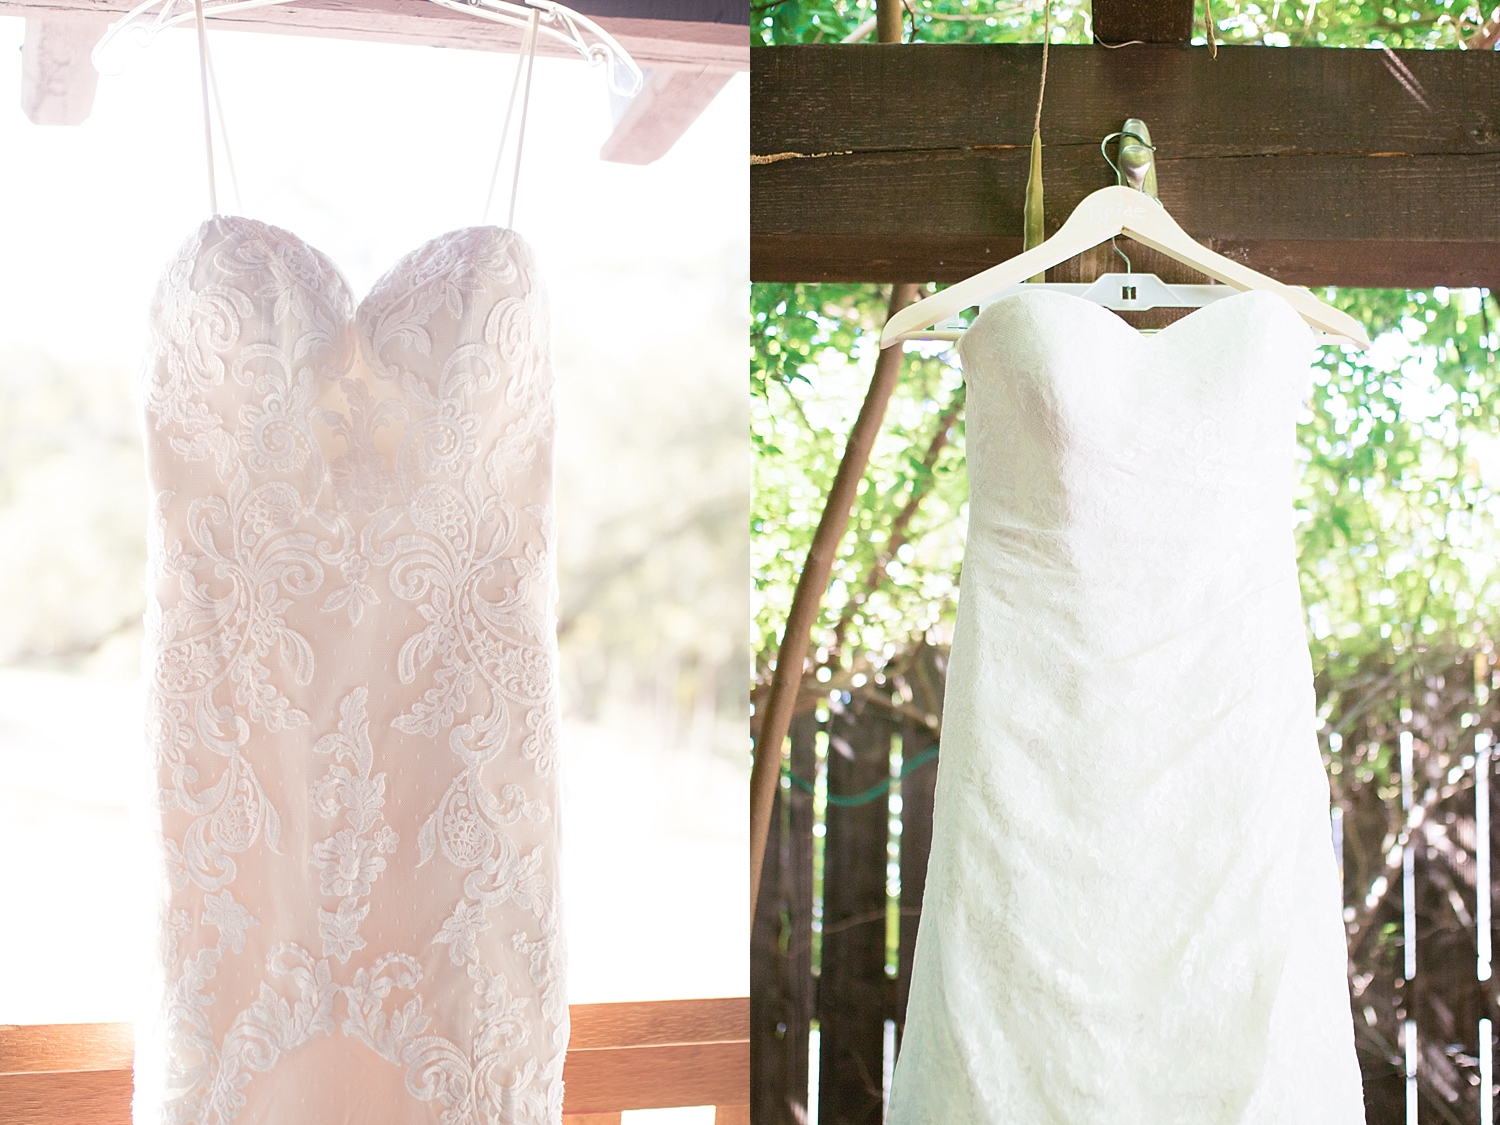 White lace sweet heart neckline and strapless dress, and a stunning custom made cream dress with lace plunging neckline, low back dress.